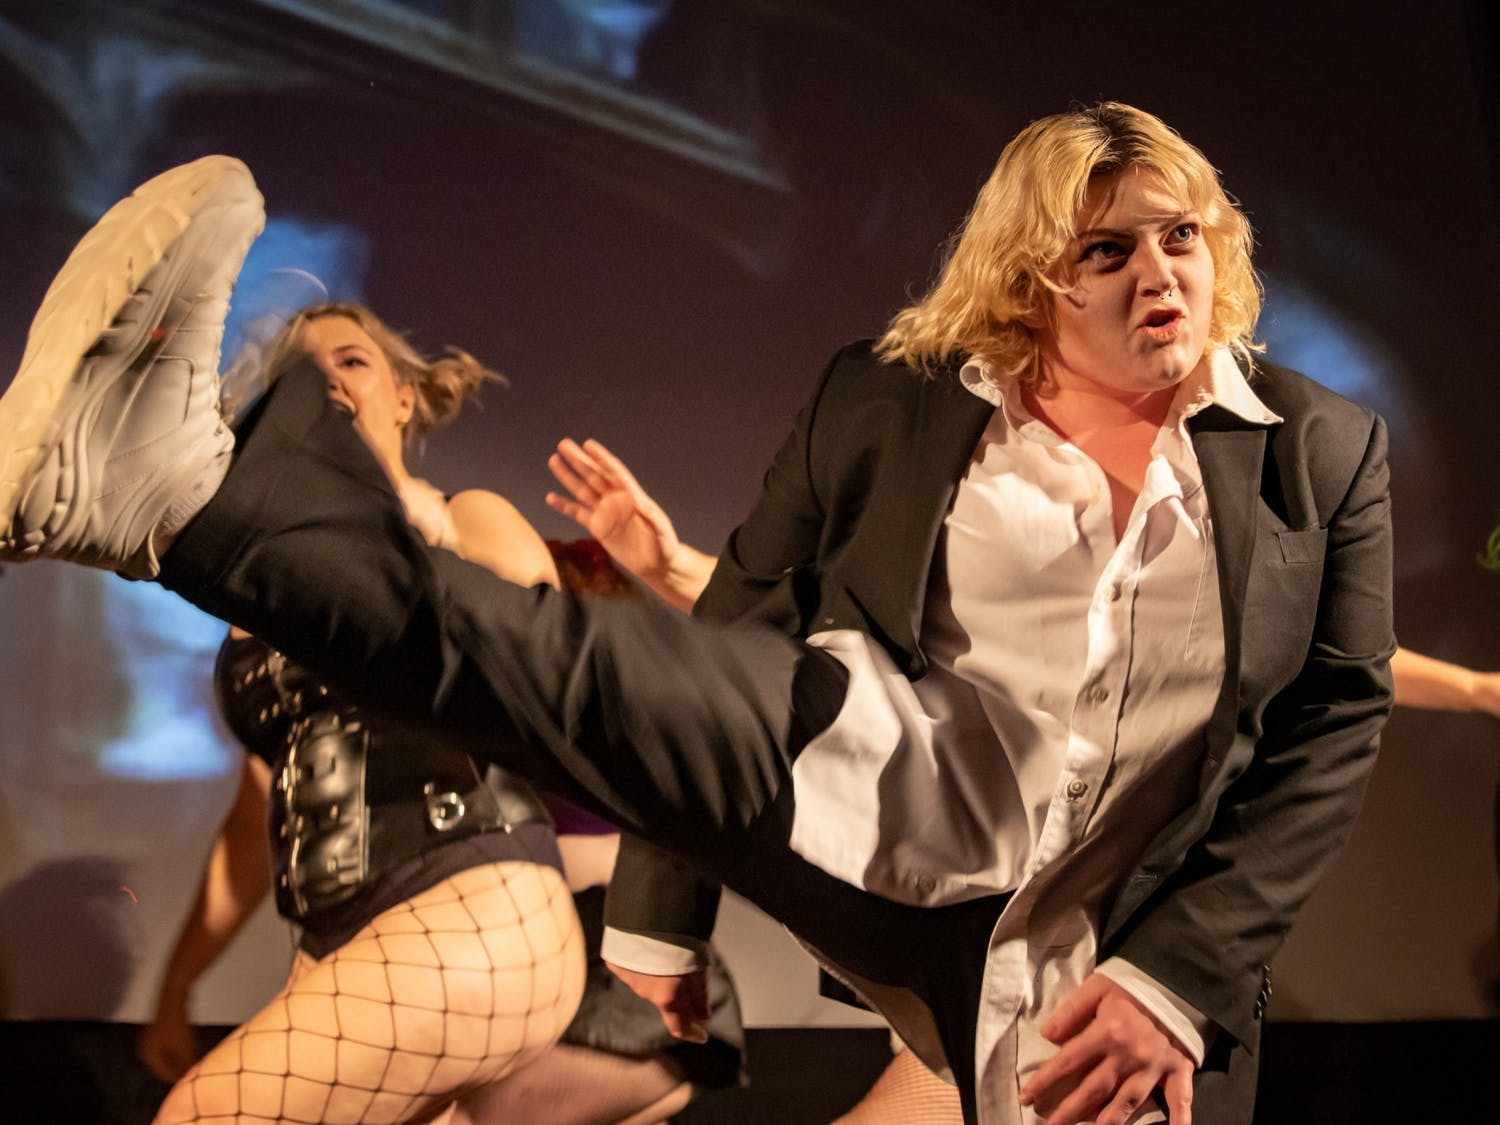 UNC junior Lily Vance portrays Riff during an Oct. 26 technical rehearsal of the Rocky Horror Picture Show at the Varsity Theatre. The production is an annual tradition of the UNC Pauper Players.